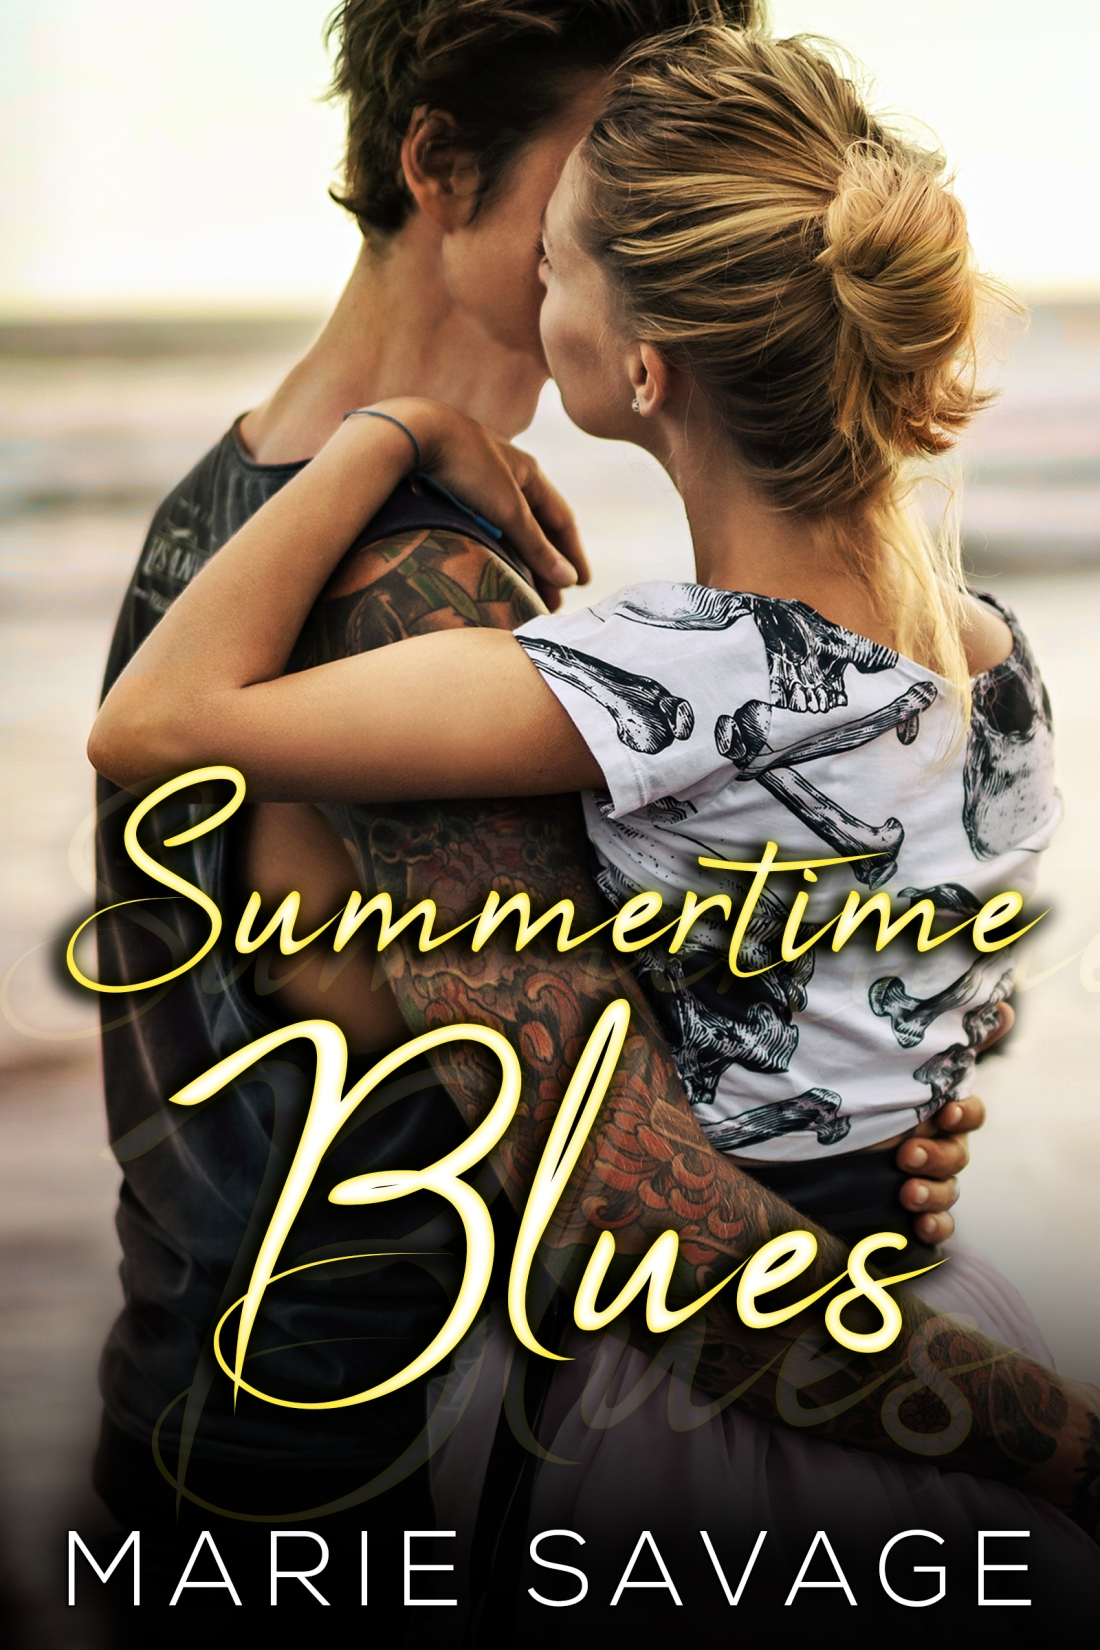 Summertime Blues Marie Savage E-Cover